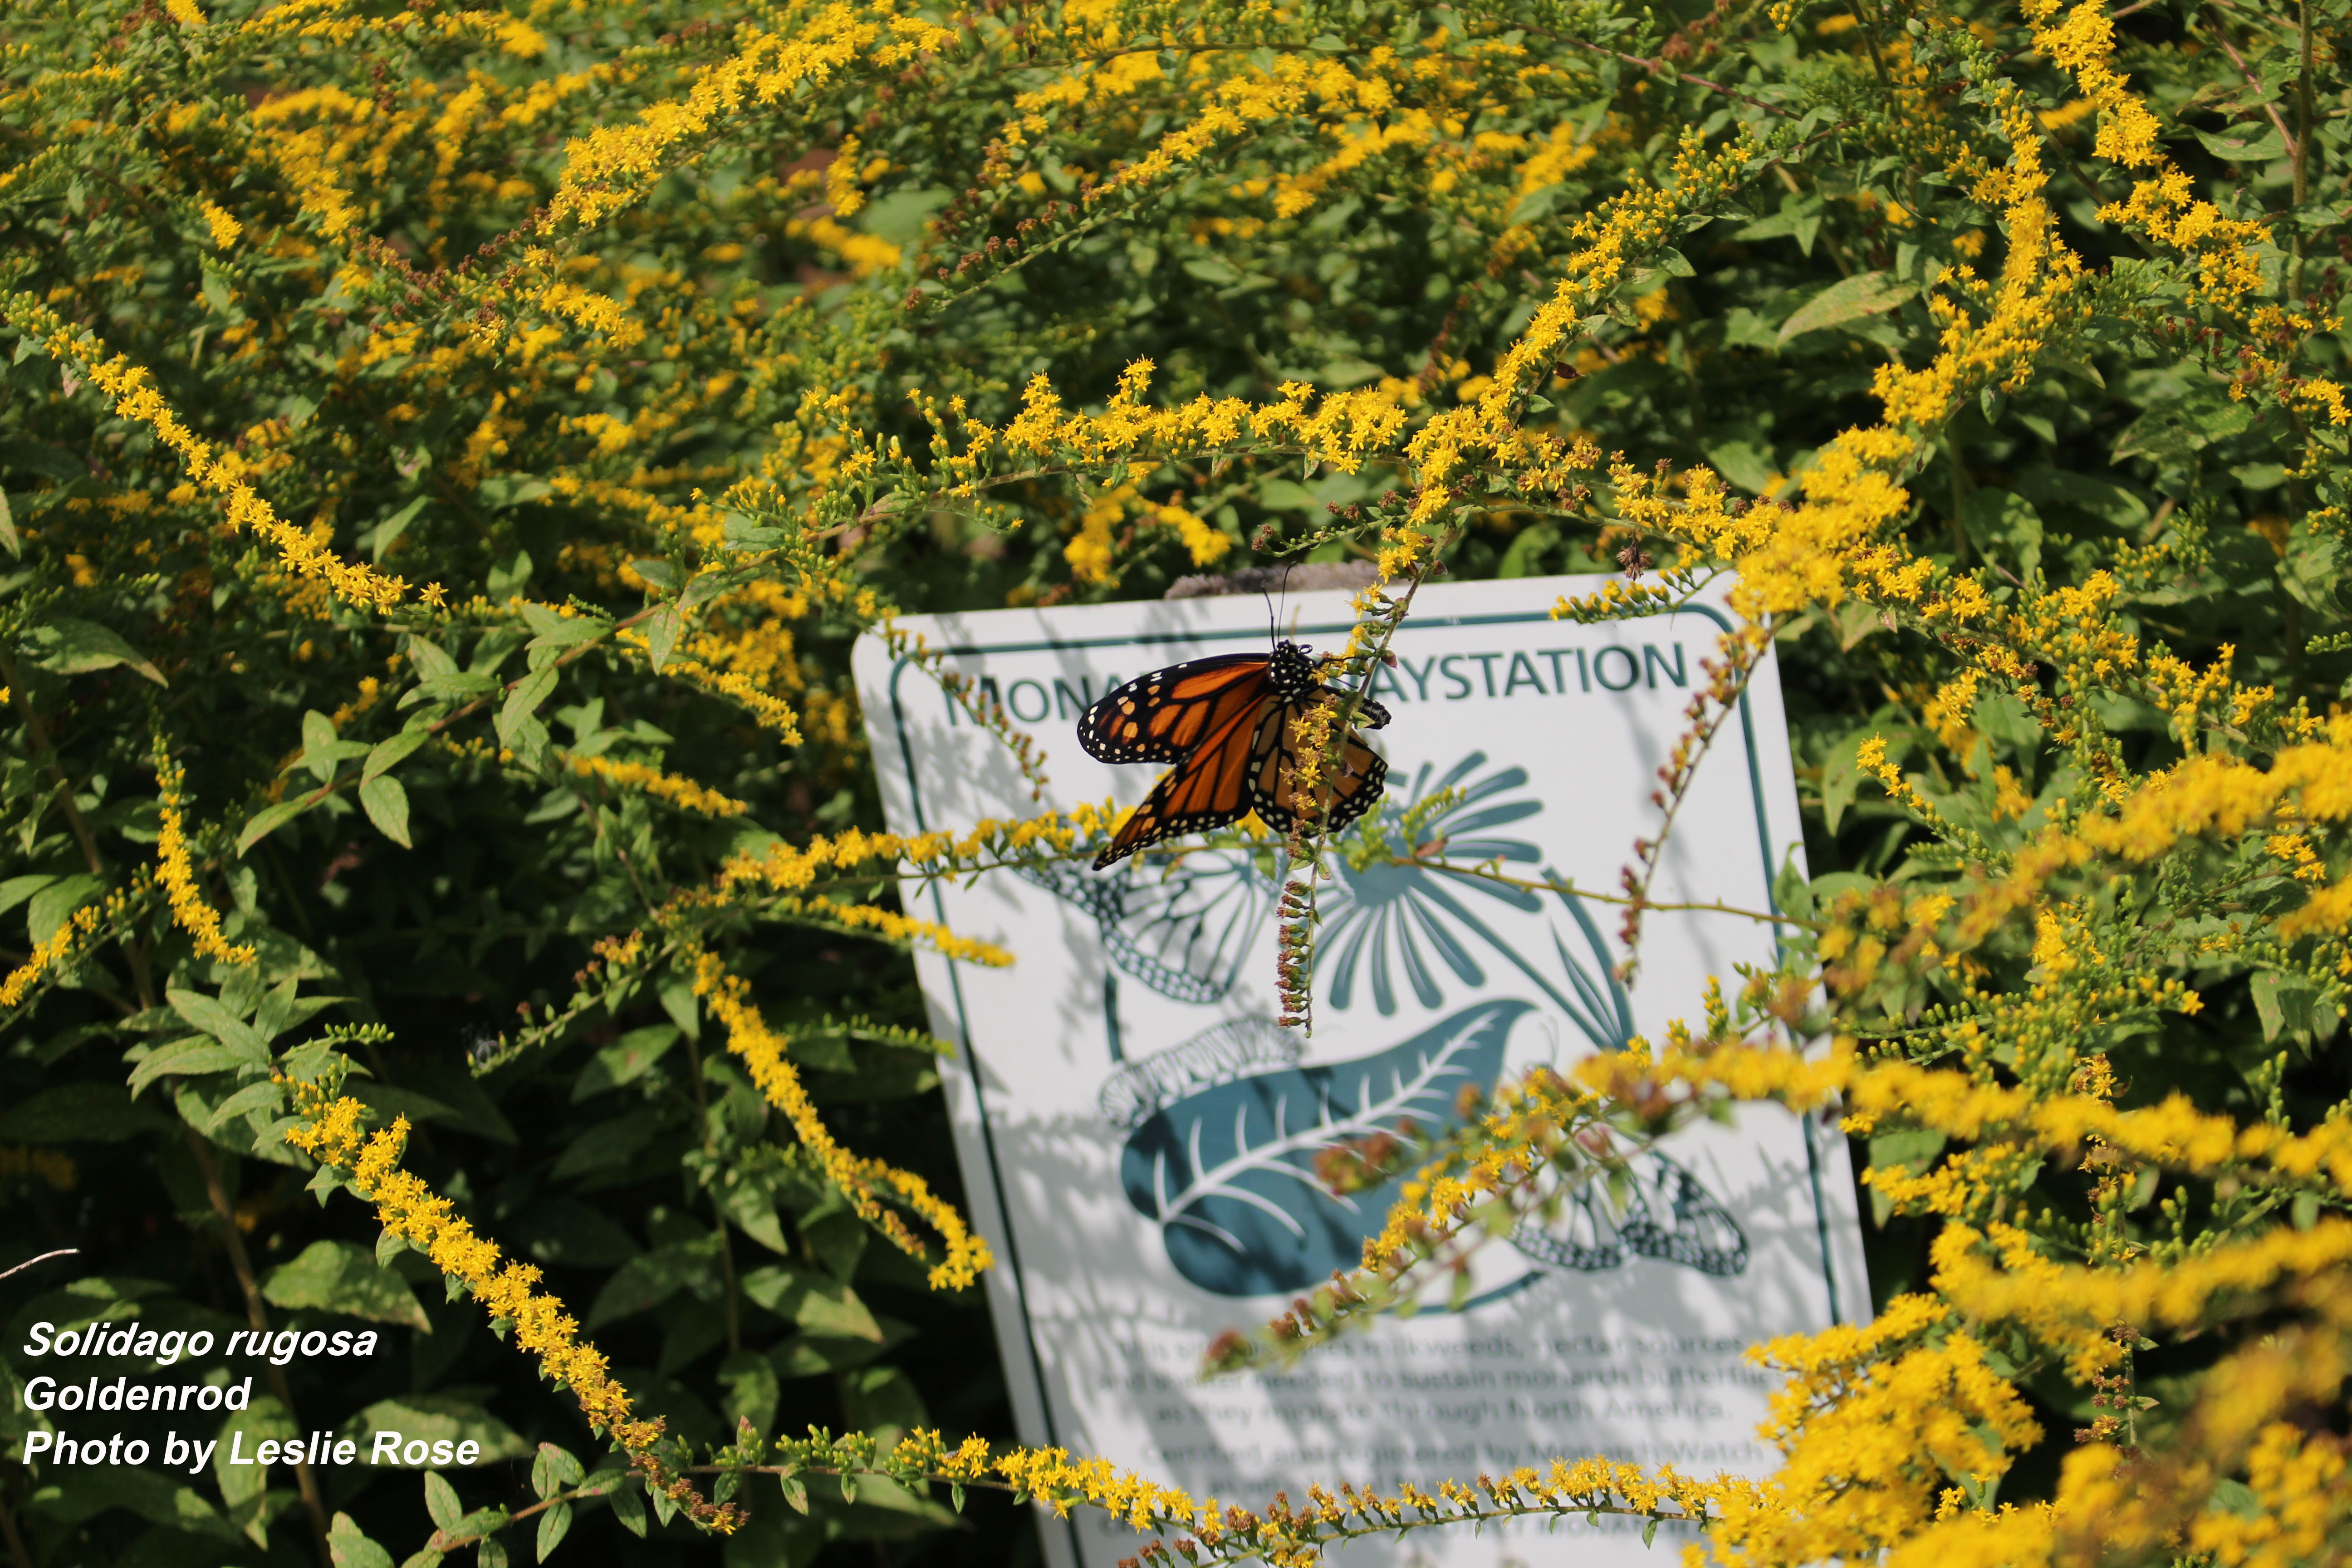 Goldenrod with monarch